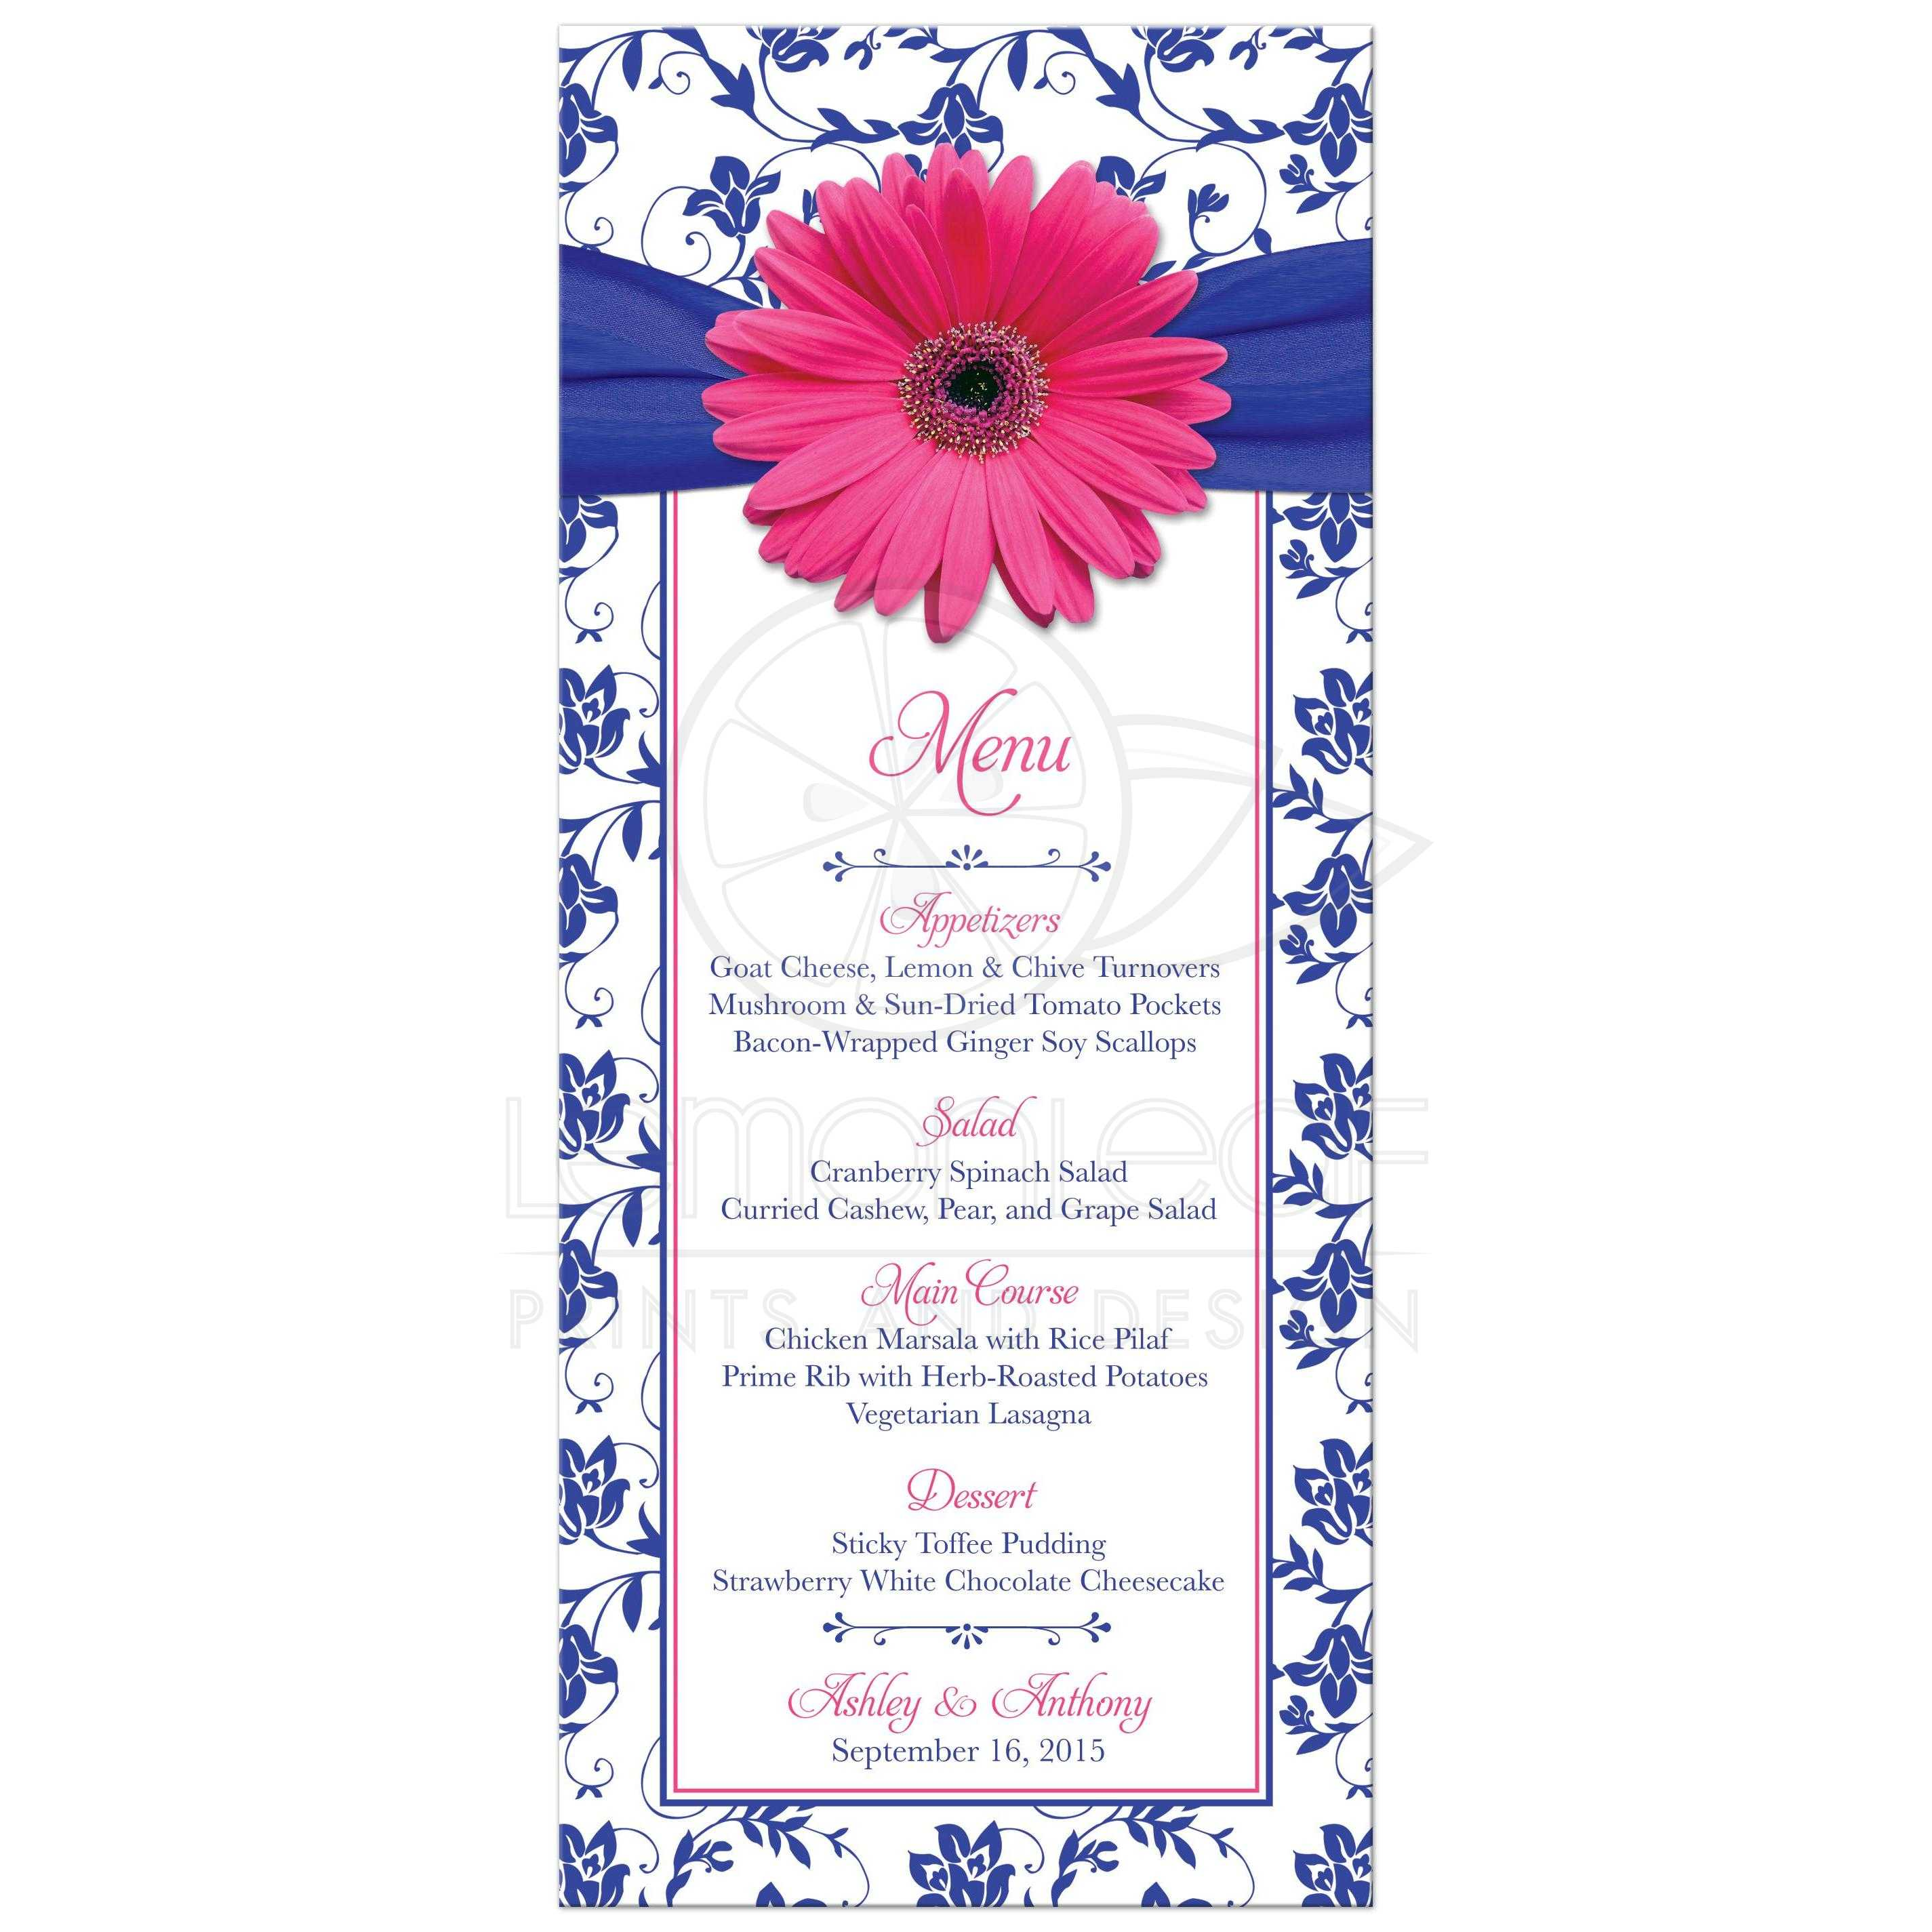 Wedding menu pink gerber daisy royal blue damask pink gerber daisy royal blue and white damask and ribbon wedding reception menu front mightylinksfo